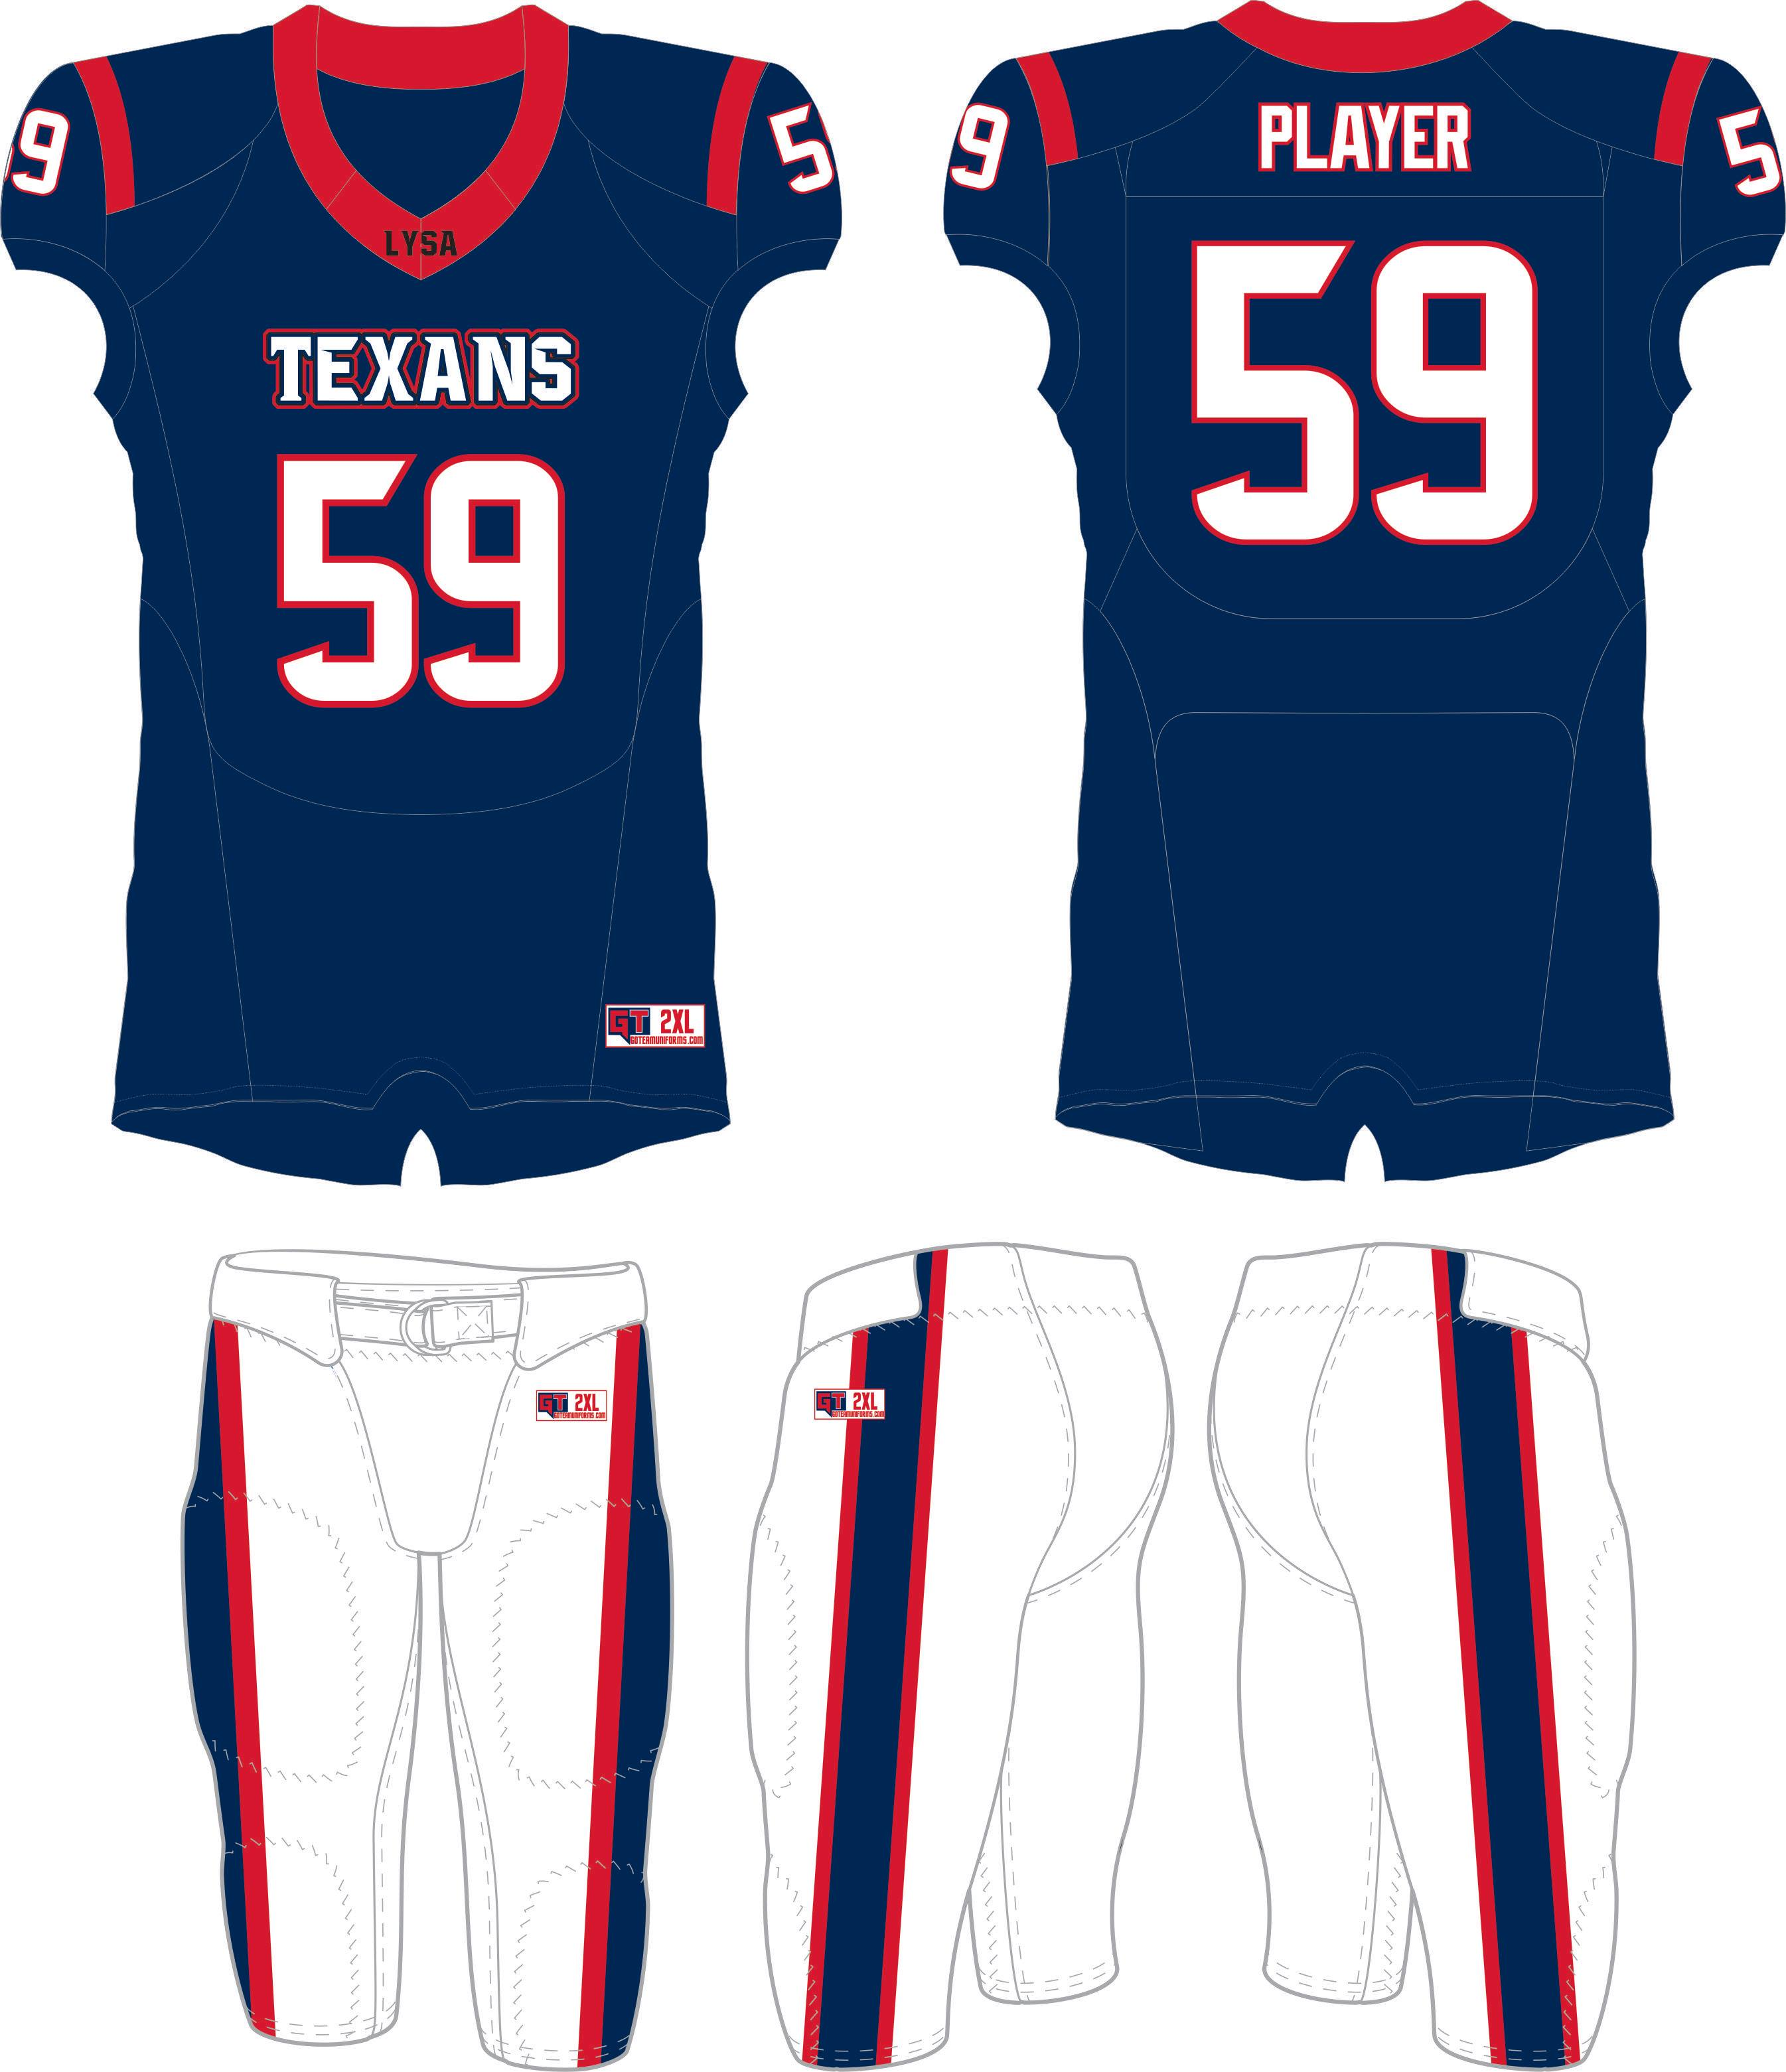 LYSA Texans Tackle Uniform